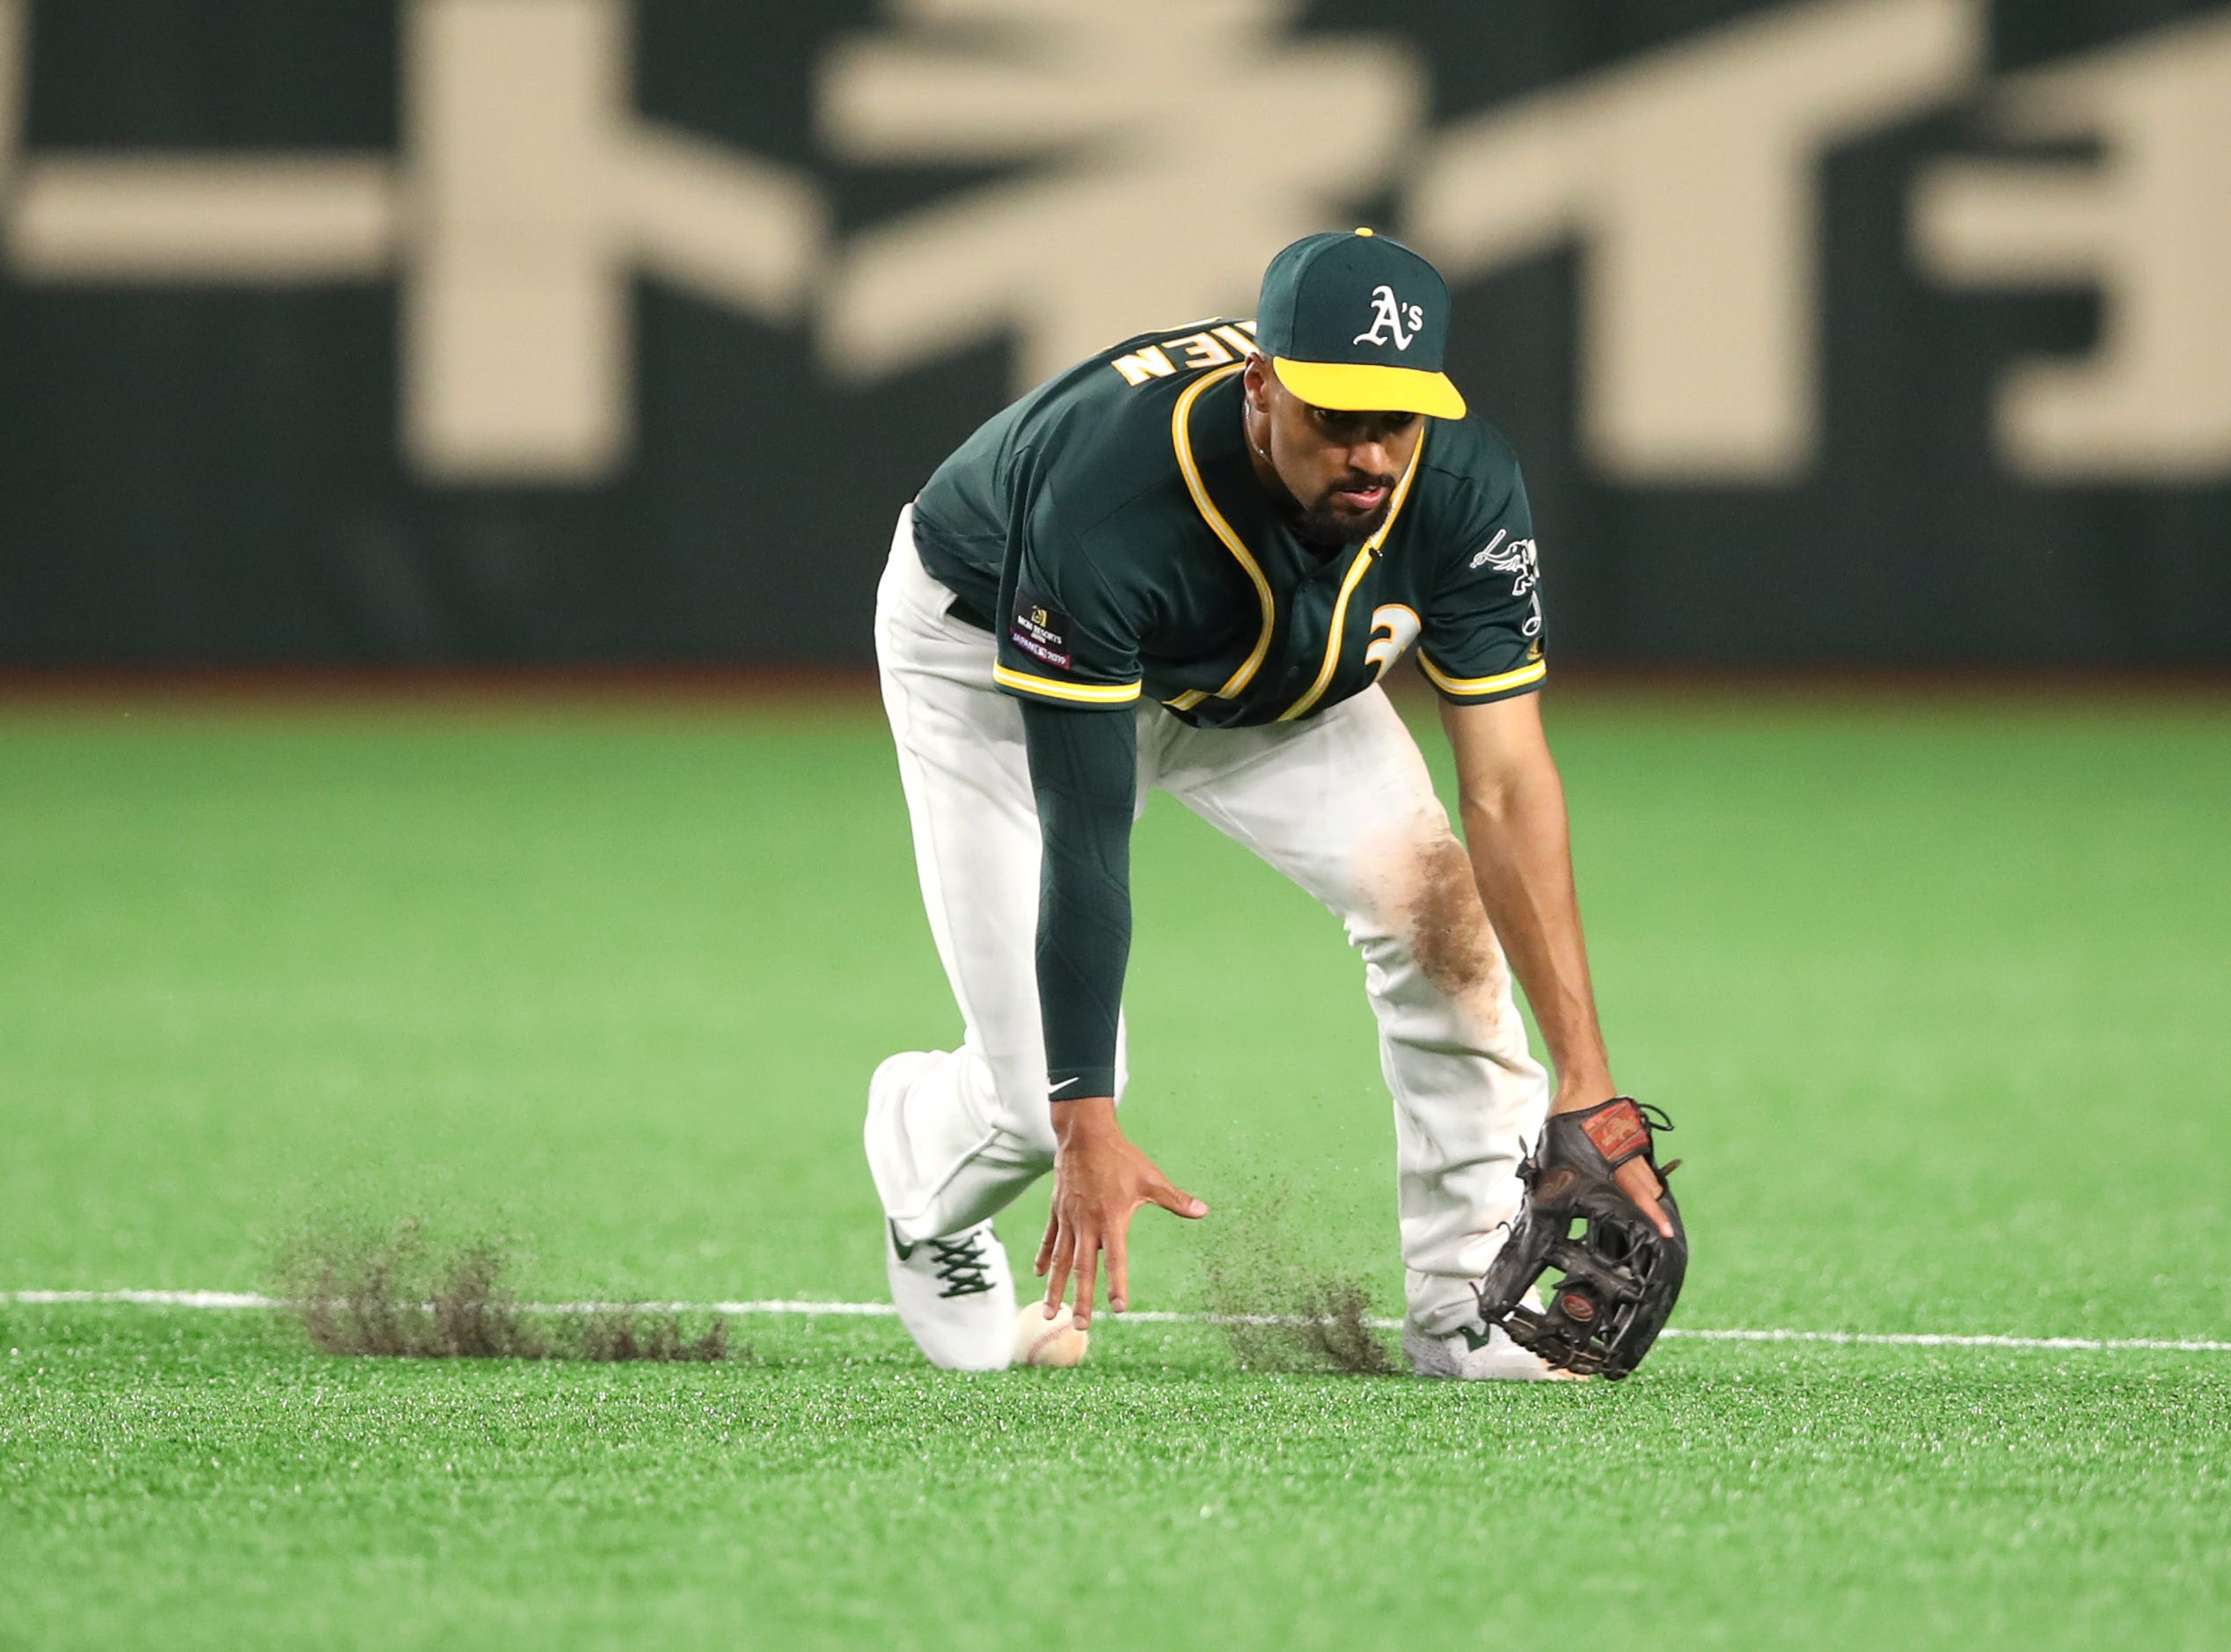 March 18: Athletics shortstop Marcus Semien mishandles a ground ball against the Nippon Ham Fighters at the Tokyo Dome.